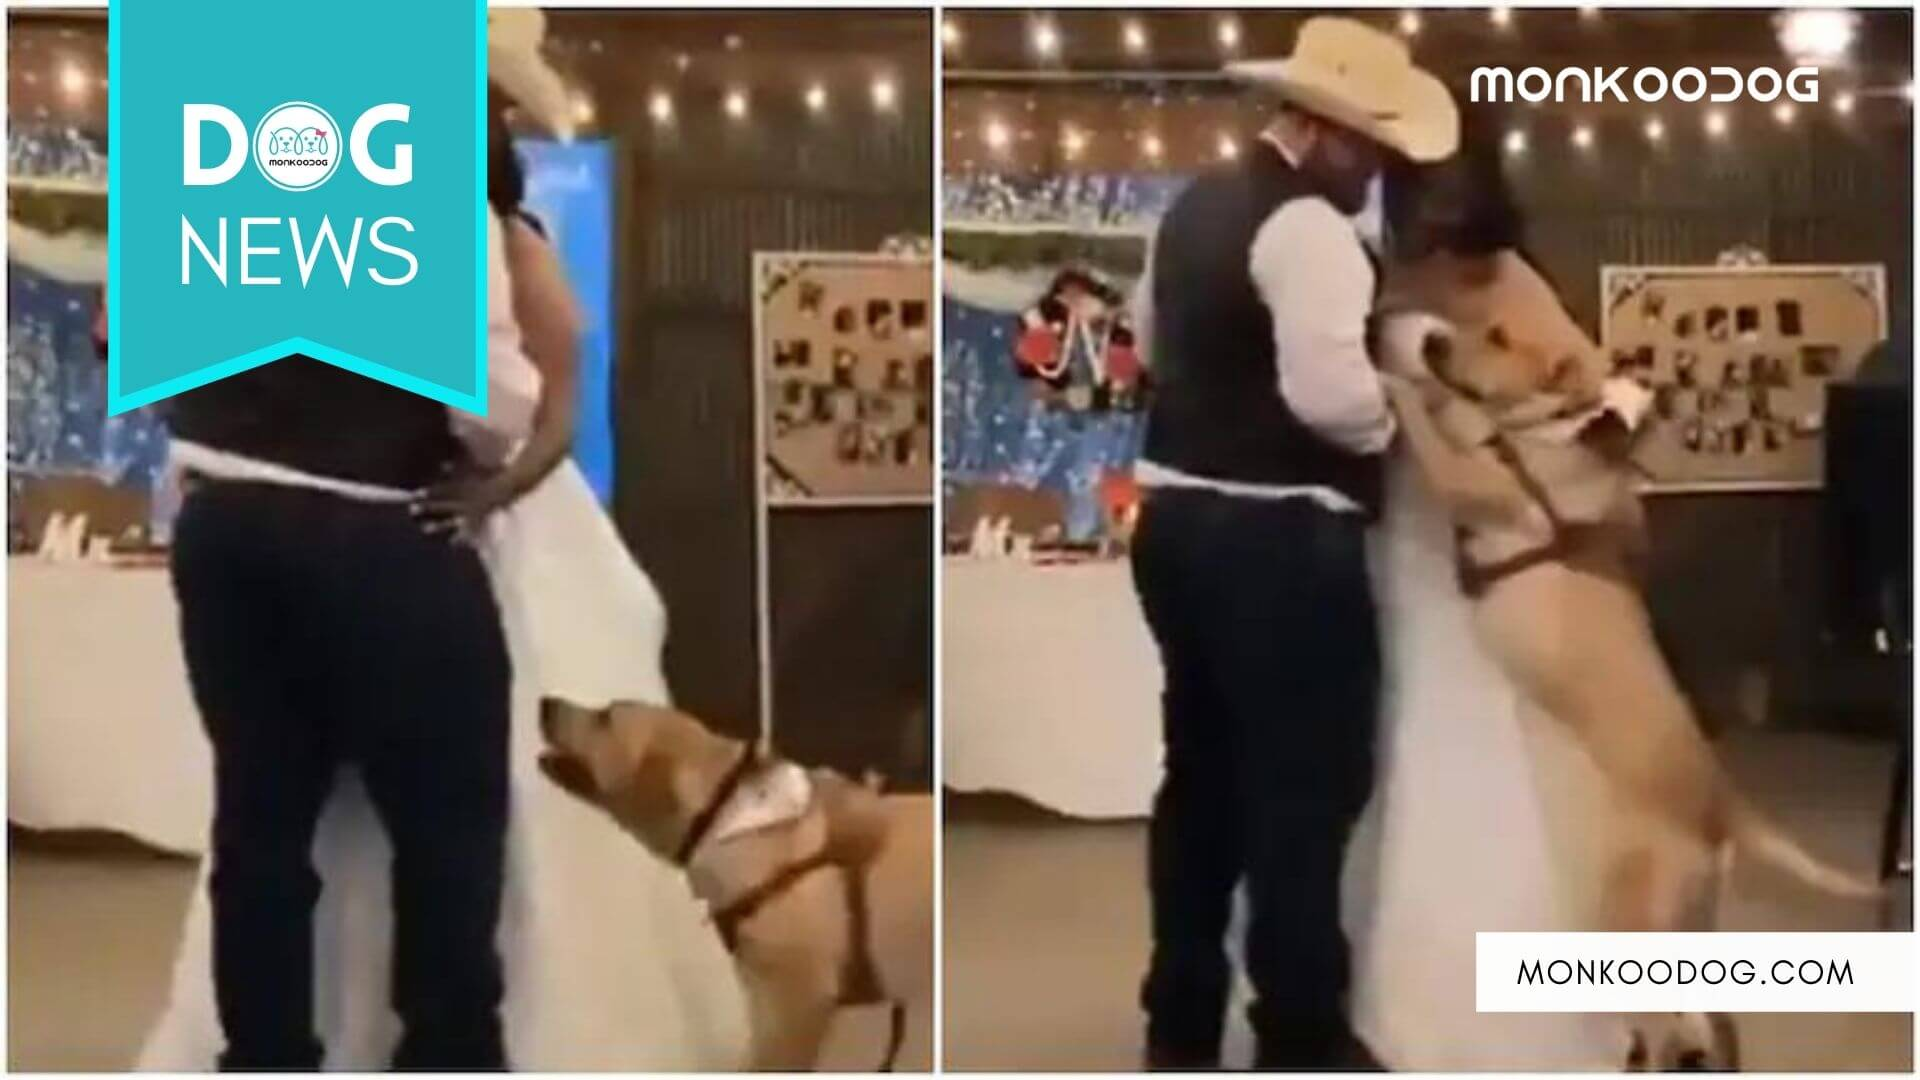 The Internet can't stop gushing over a viral dog dancing to Ed Sheeran's music during a wedding